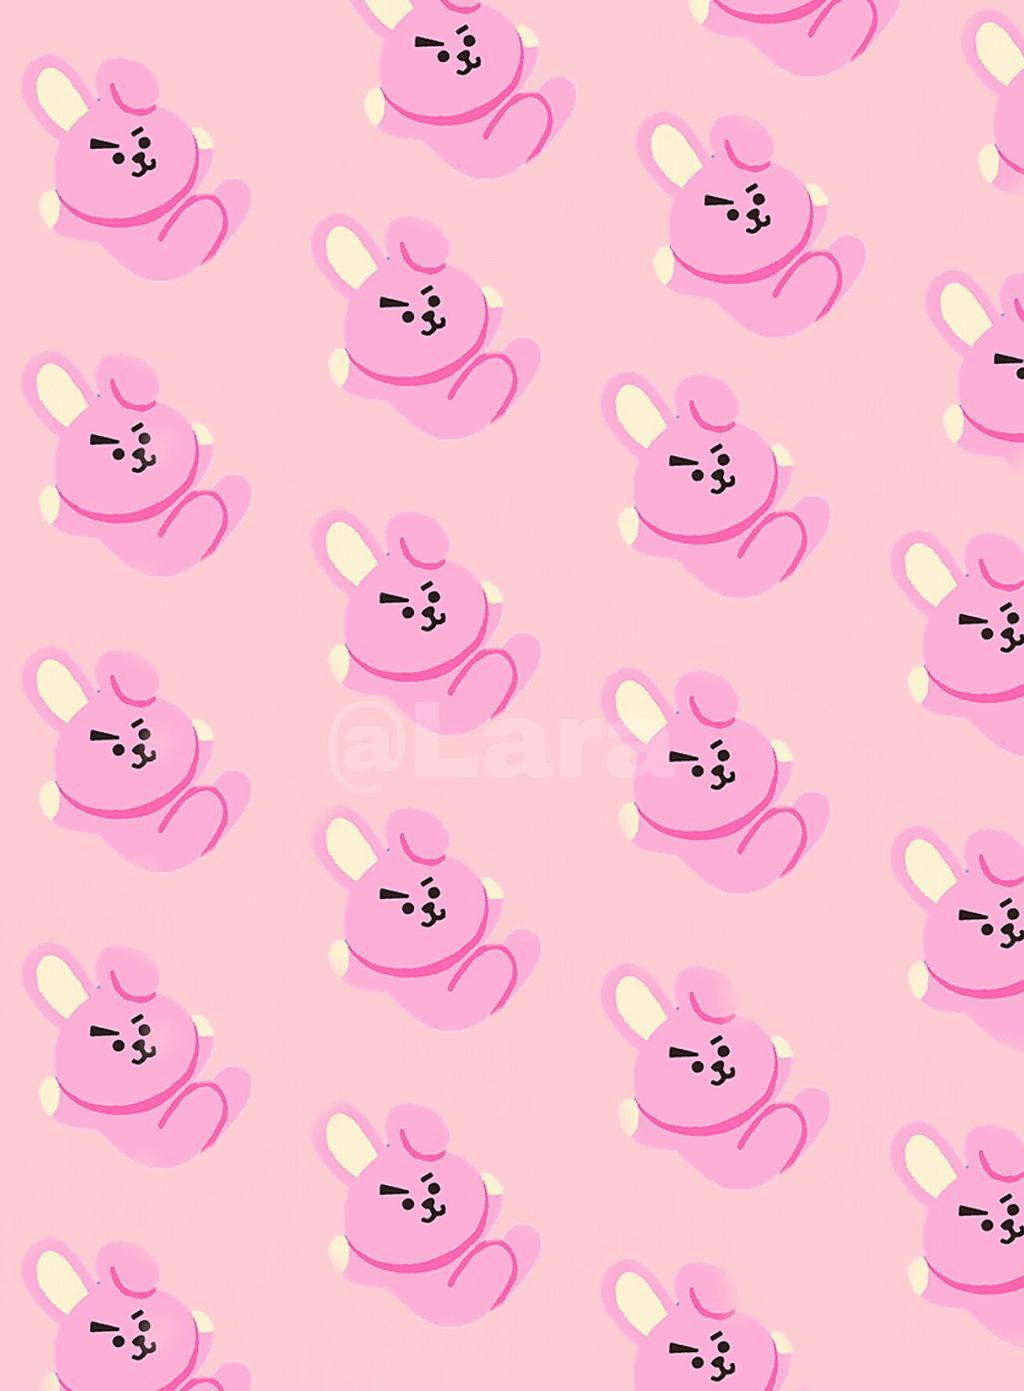 BT21 Cooky Wallpapers - Top Free BT21 Cooky Backgrounds ...